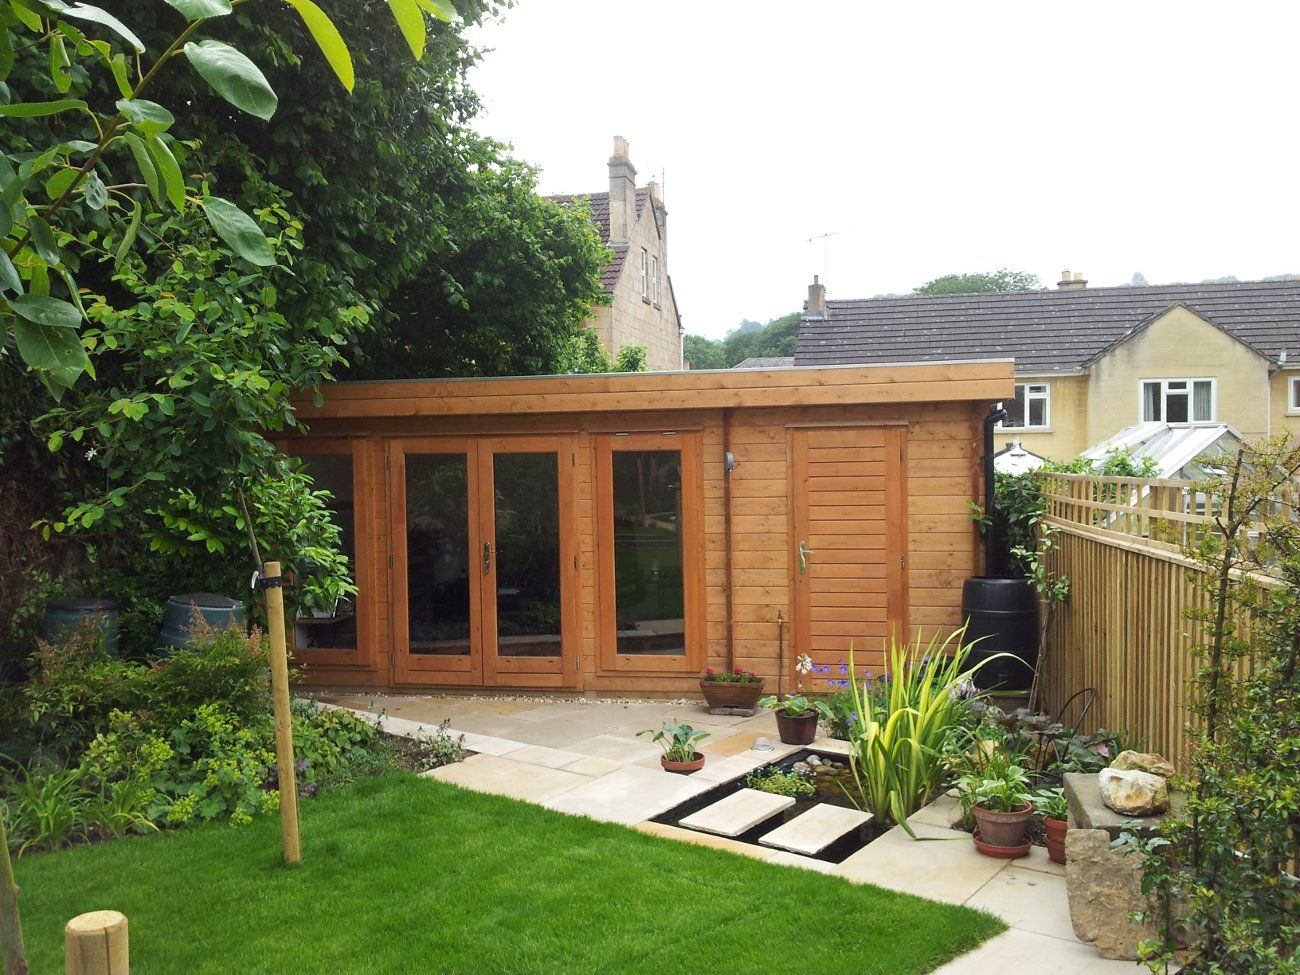 Summer house ideas google search garden offices sheds for Garden building design ideas